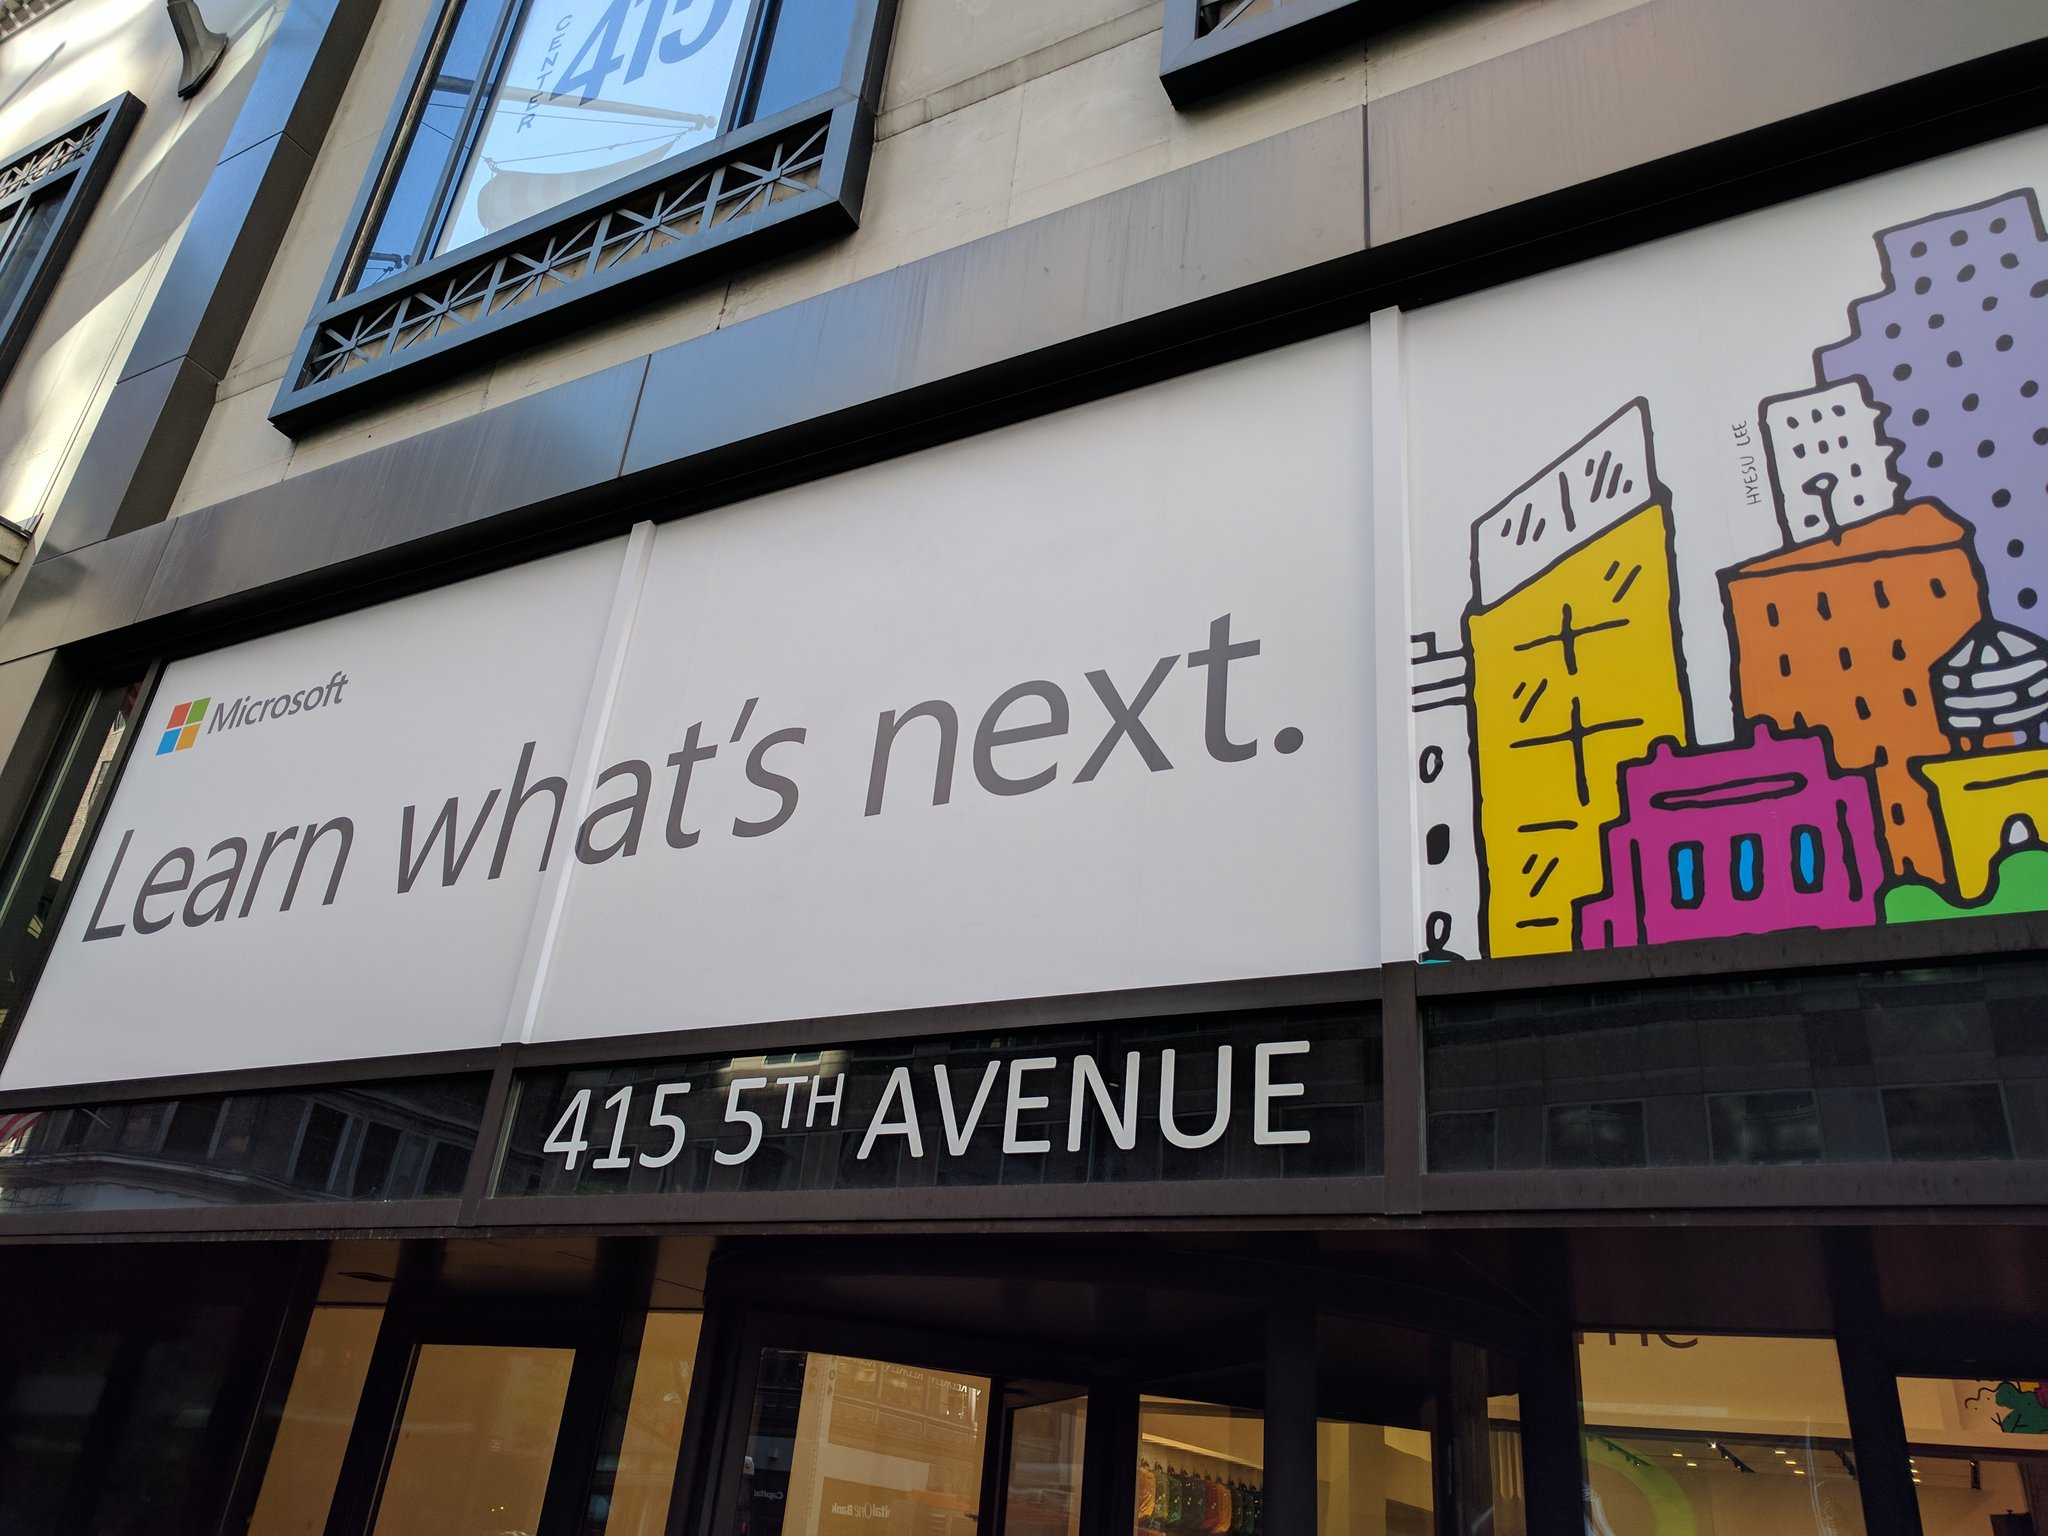 #LearnWhatsNext in NYC starting today at 930 #MIEexpert https://t.co/j6fGee0wy2